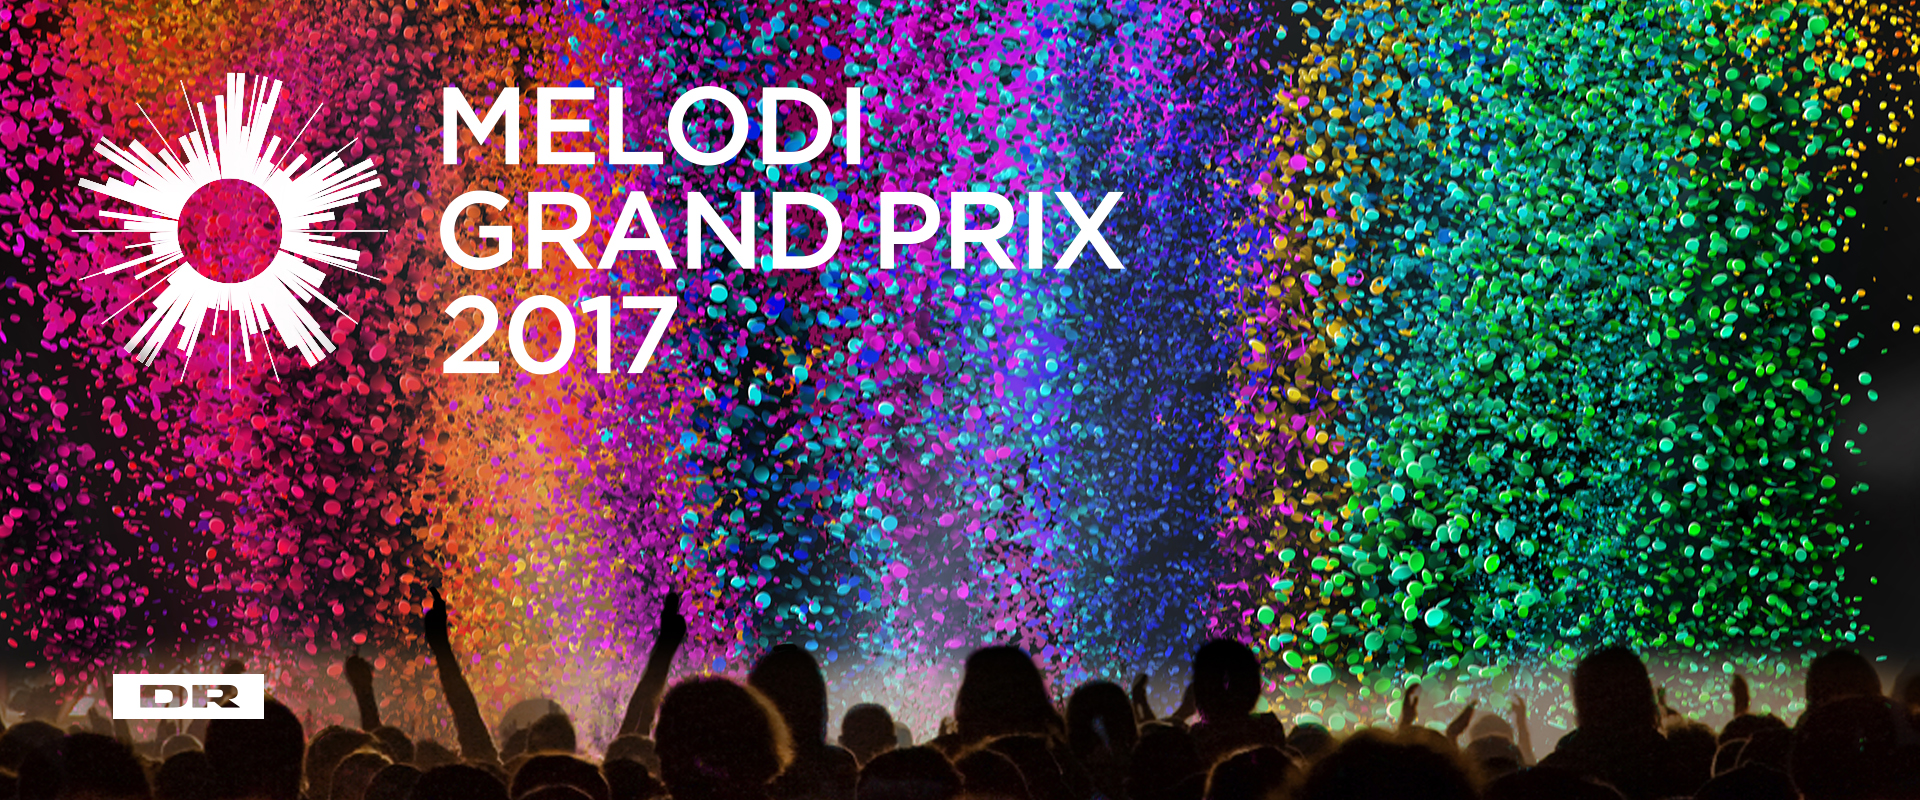 Denmark 2017: 10 Finalists for DANSK MELODI GRAND PRIX 2017